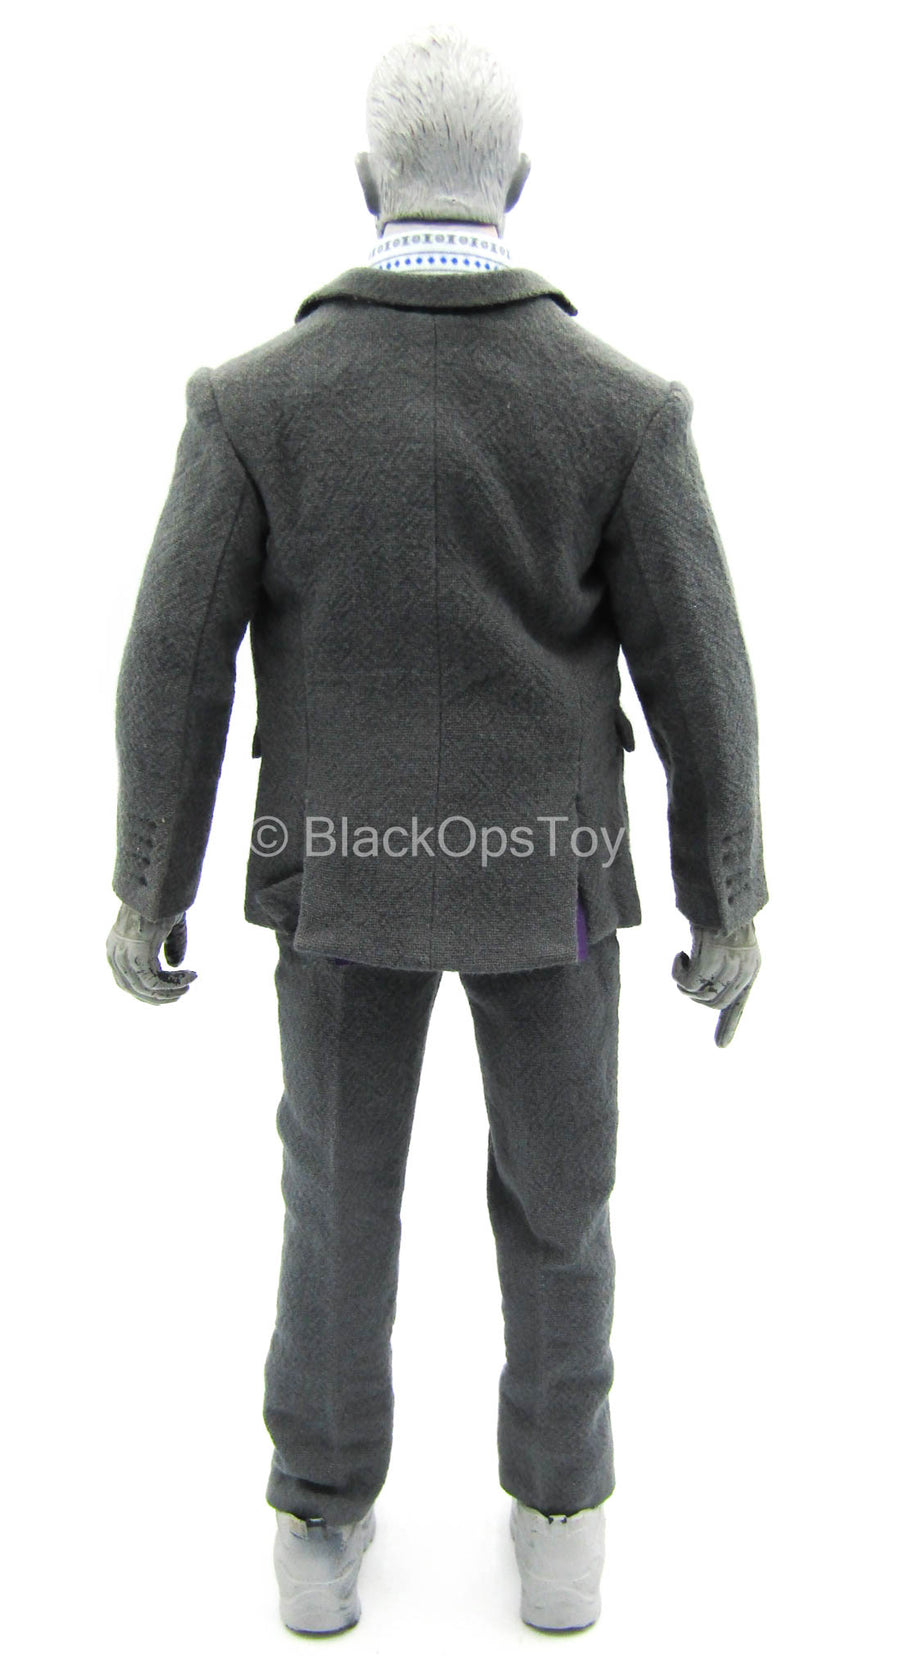 The Joker Bank Robber Ver. - Grey Suit Set